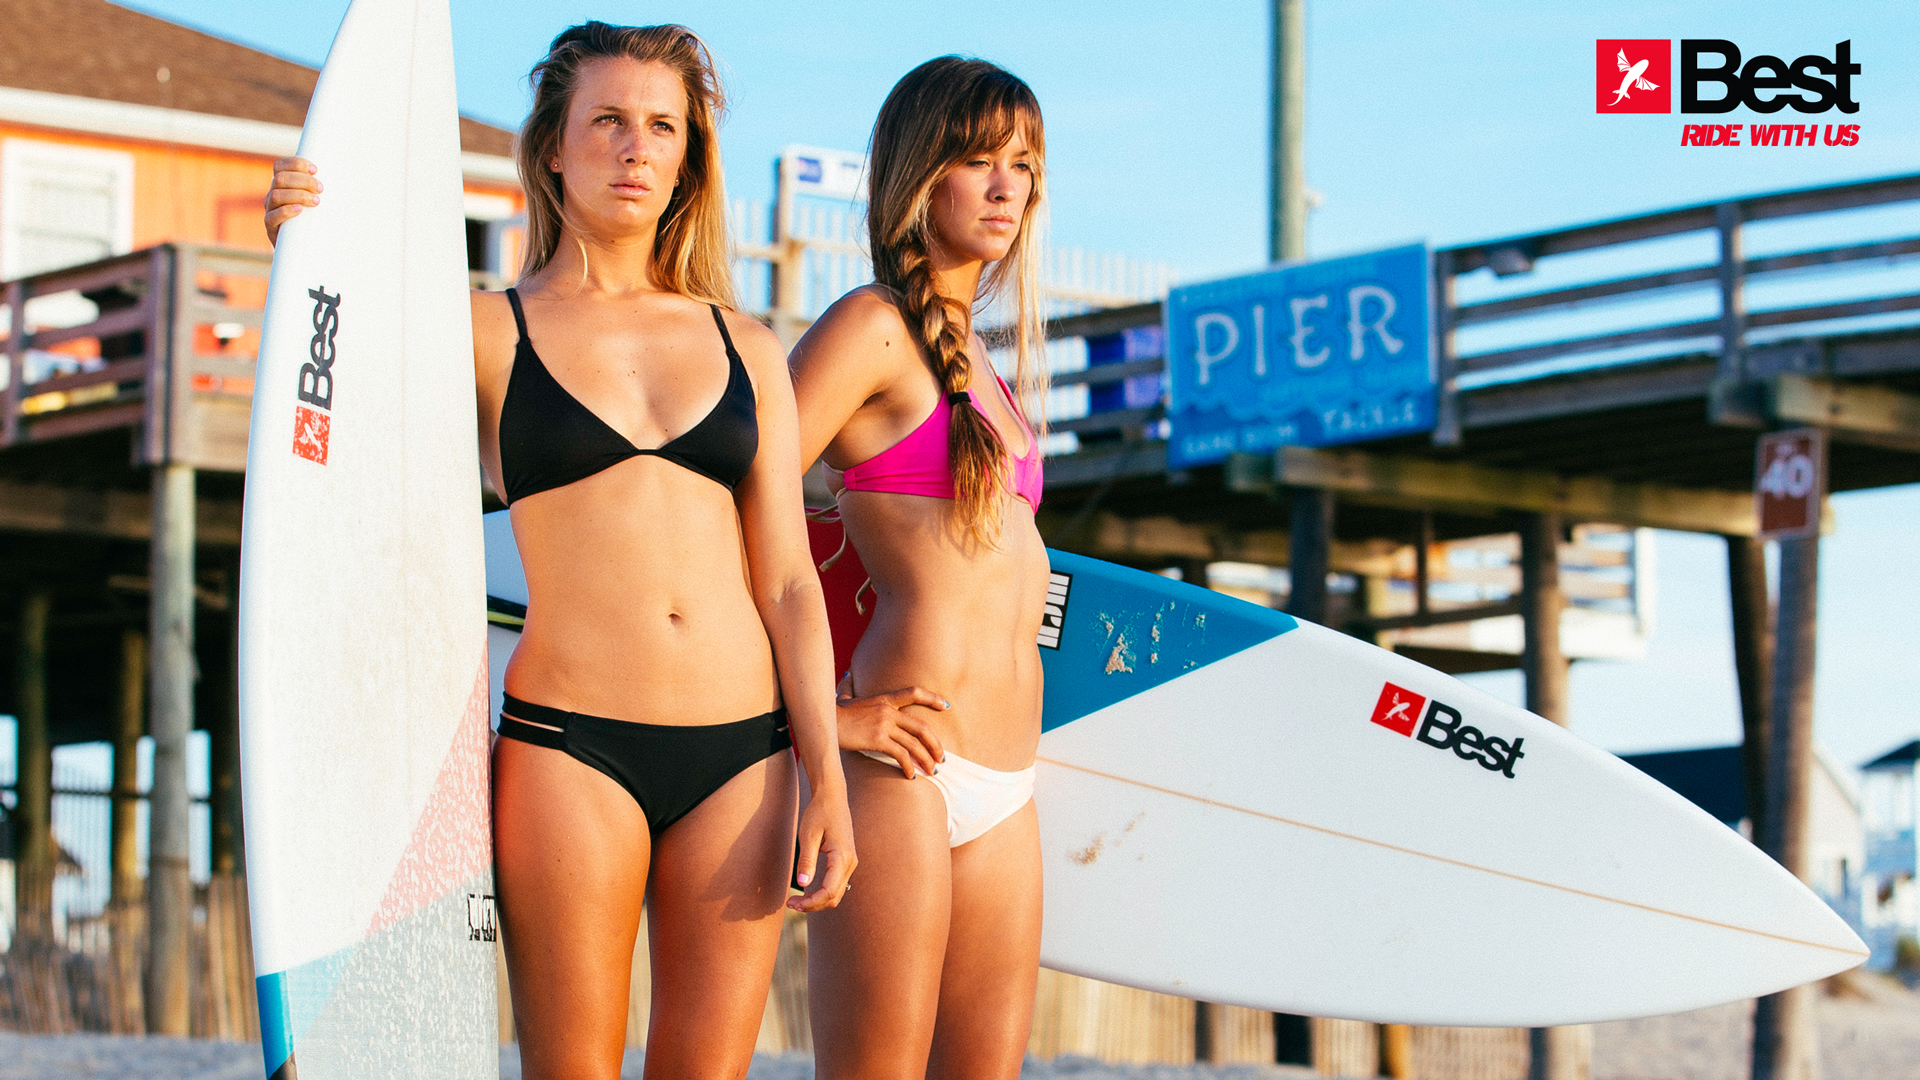 kitesurf wallpaper image - Two Best Kiteboarding kitechicks in bikini with surfboards looking to take a ride - in resolution: High Definition - HD 16:9 1920 X 1080